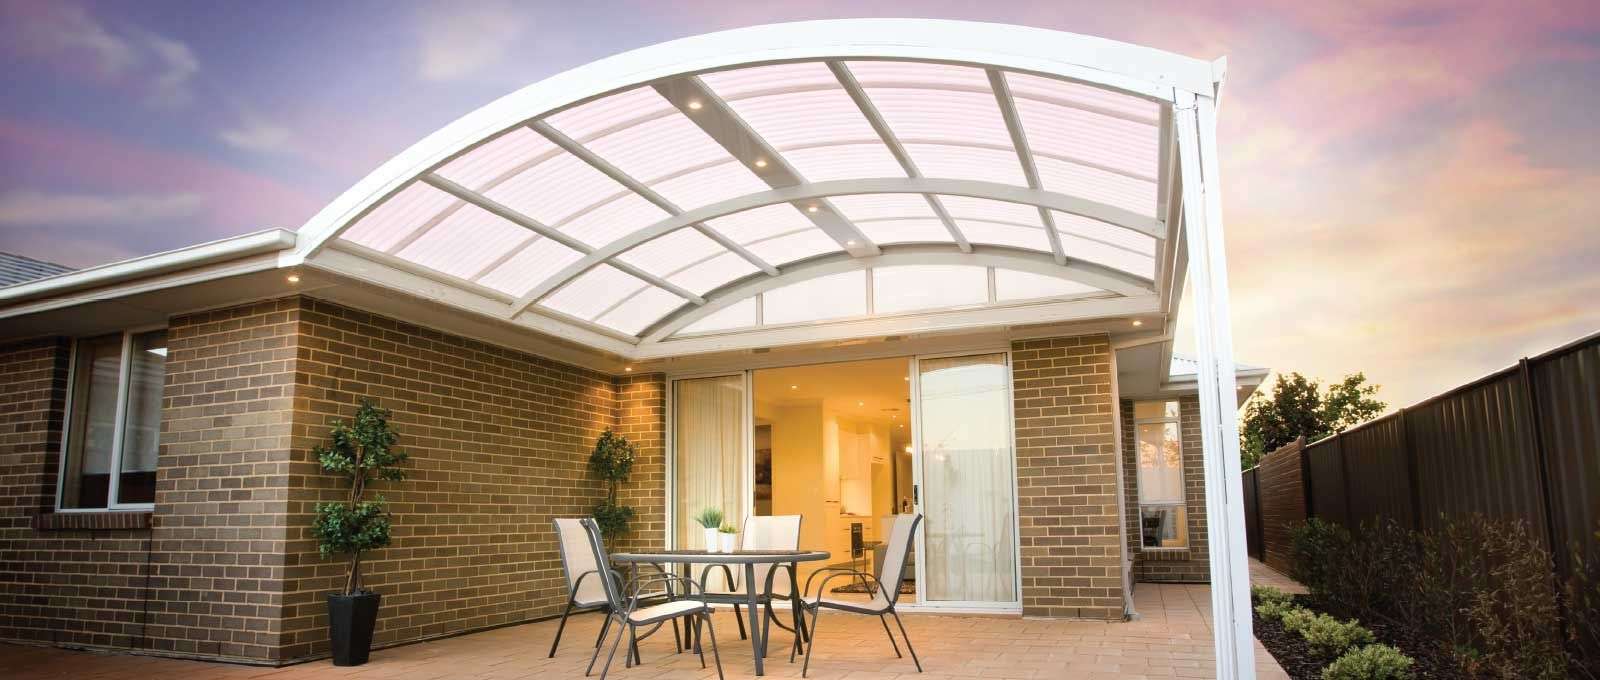 Multispan Outback Curved Patio Carport Or Verandah New Patio